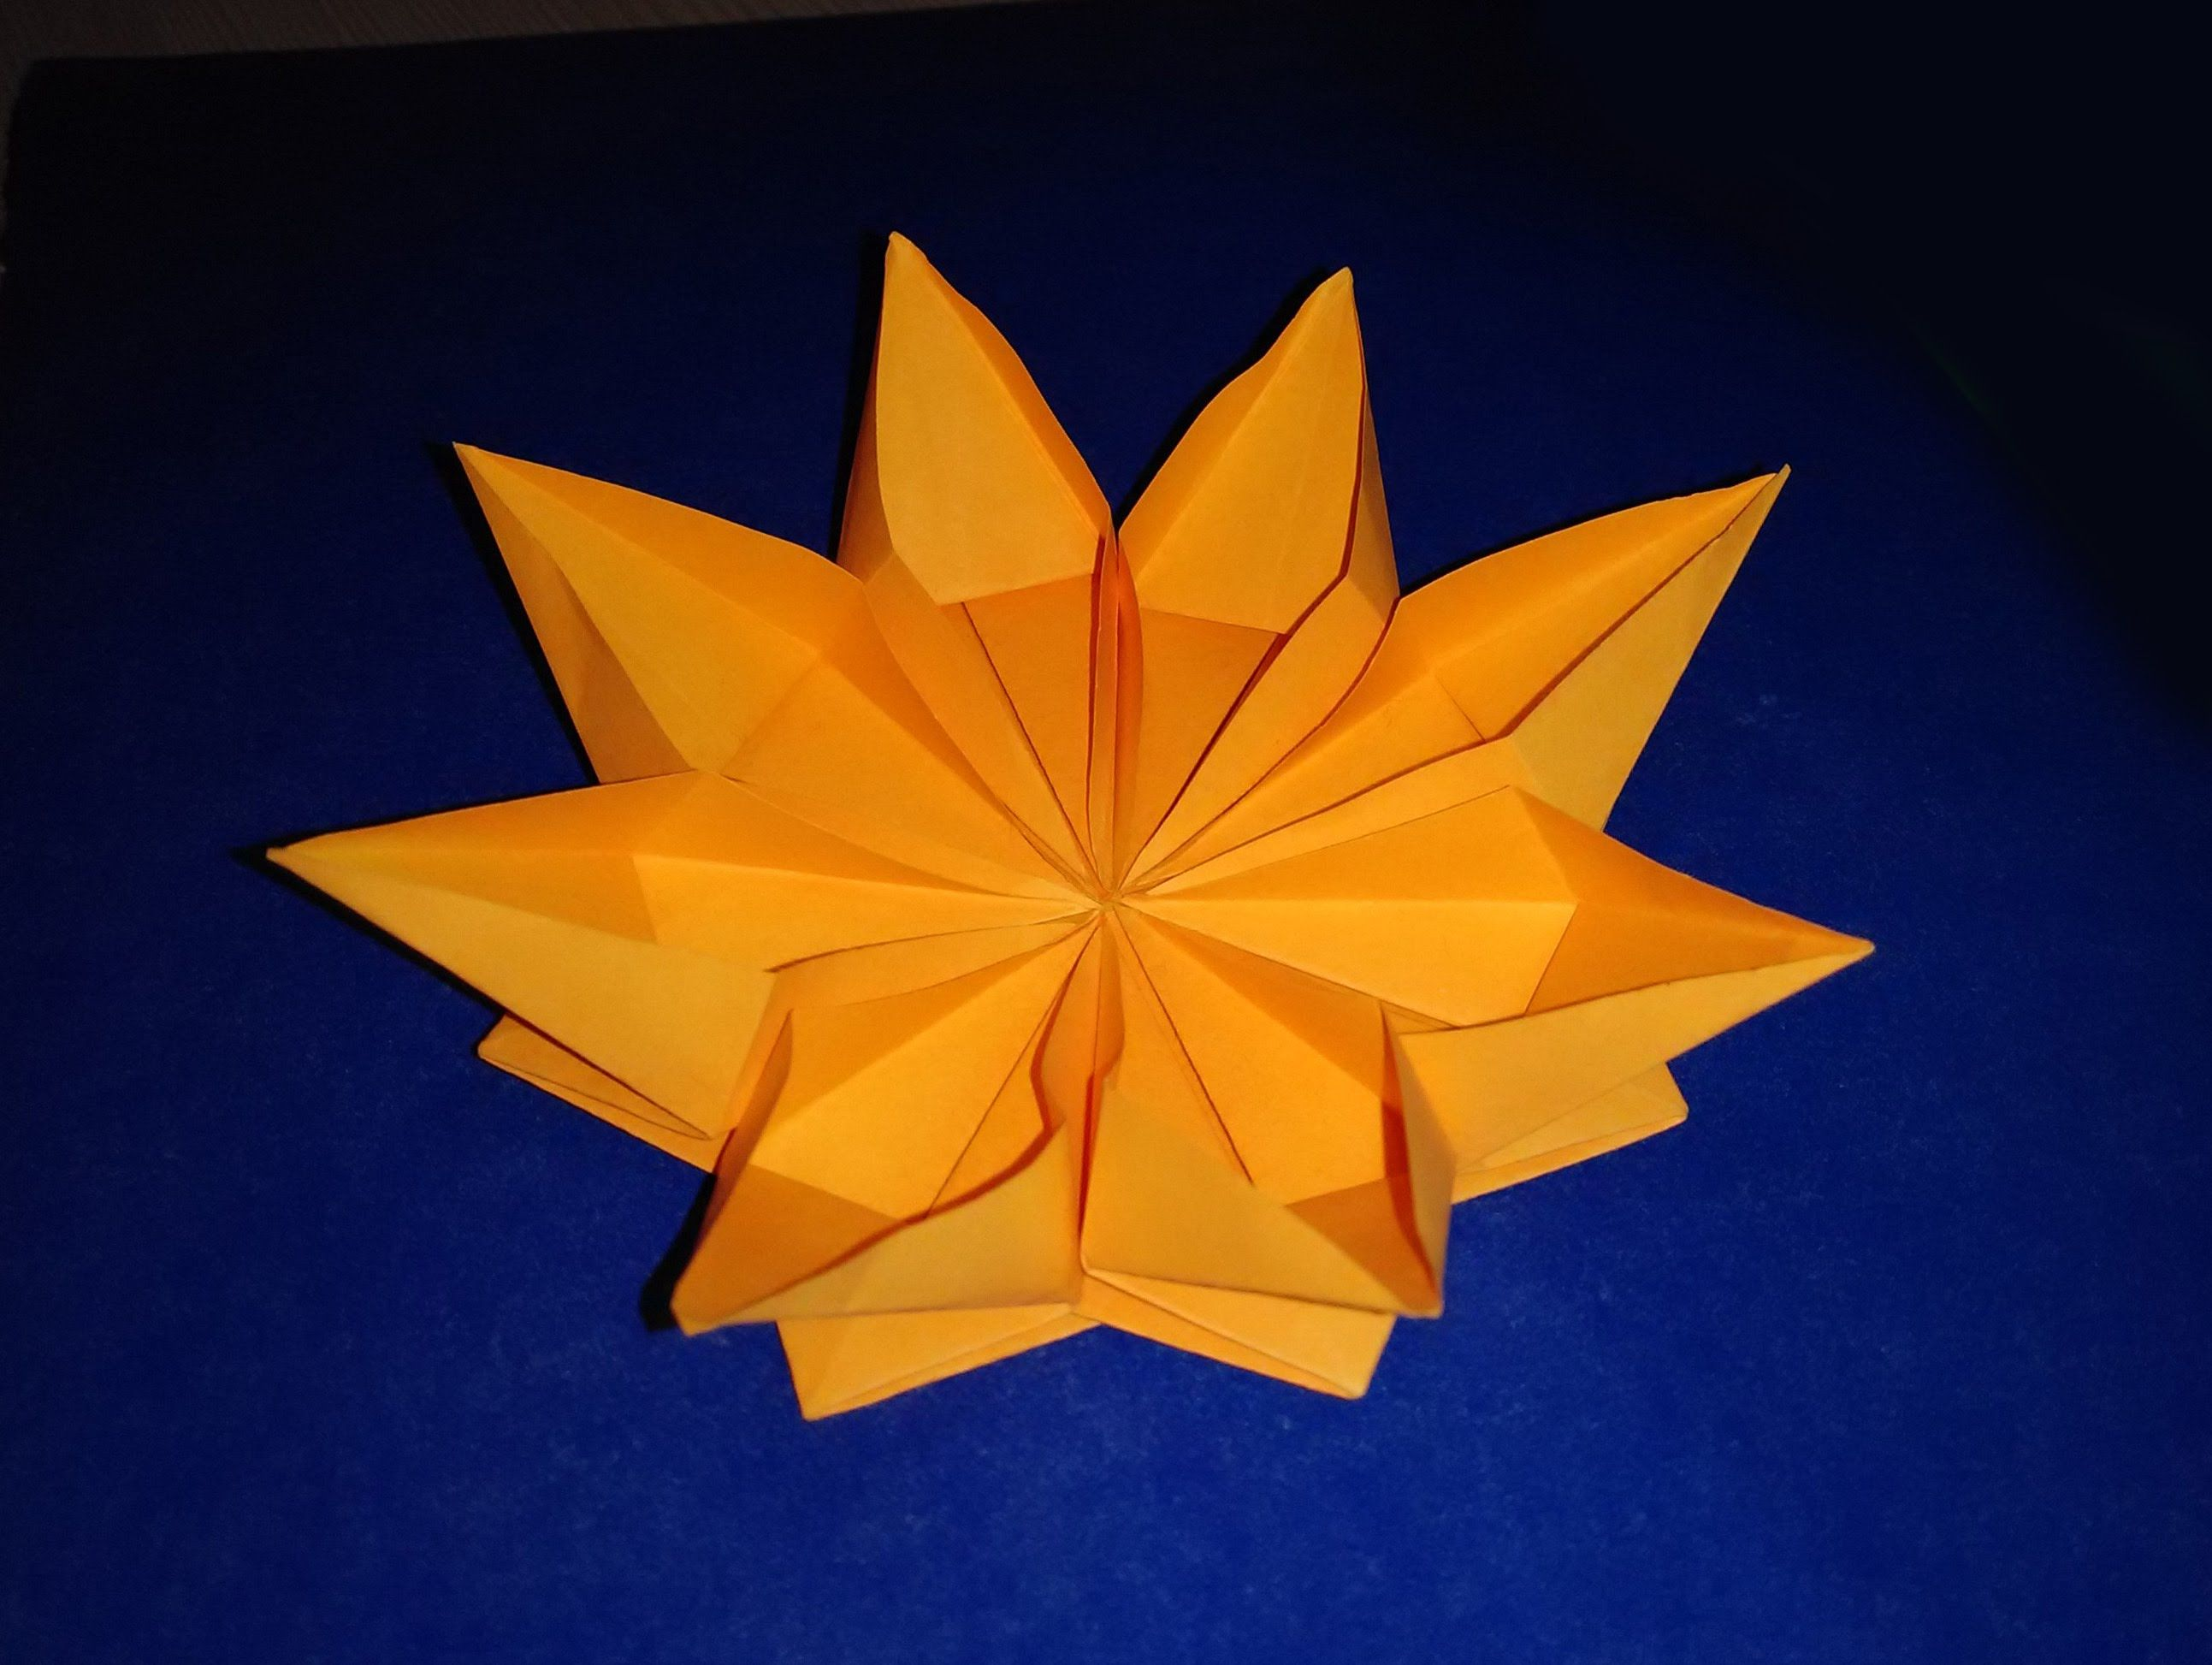 Easy paper flower origami flower ideas for gift decor easy diy gift how to make an easy origami flower kusudama for kids easy and rich paper flower mightylinksfo Choice Image